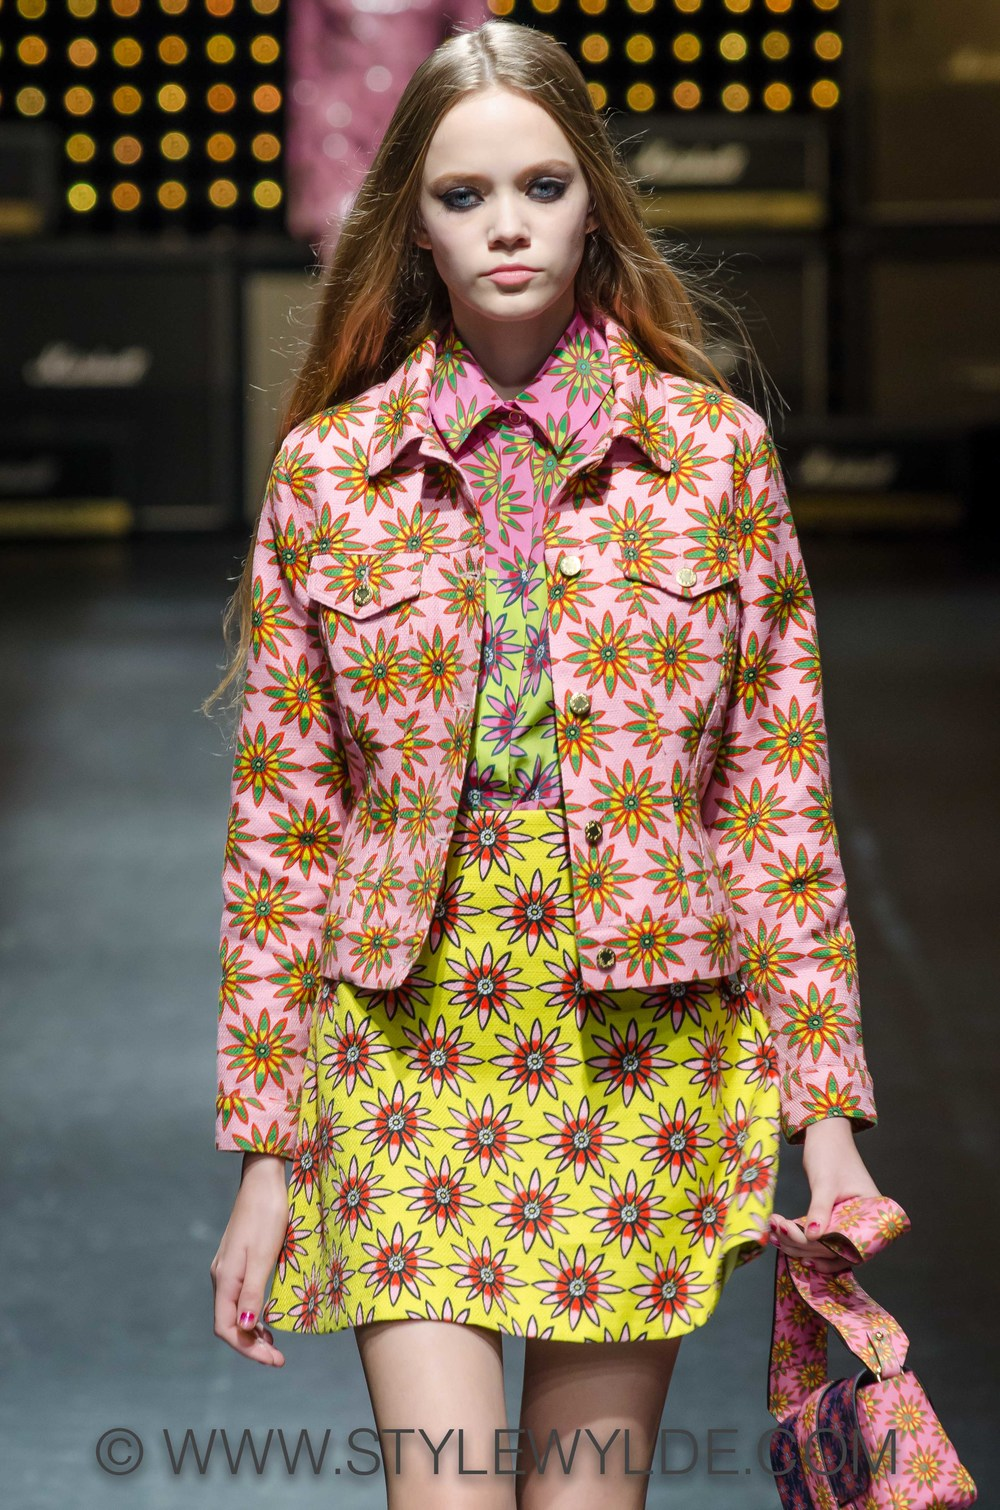 stylewylde_HouseofHolland_SS15 (29 of 68).jpg